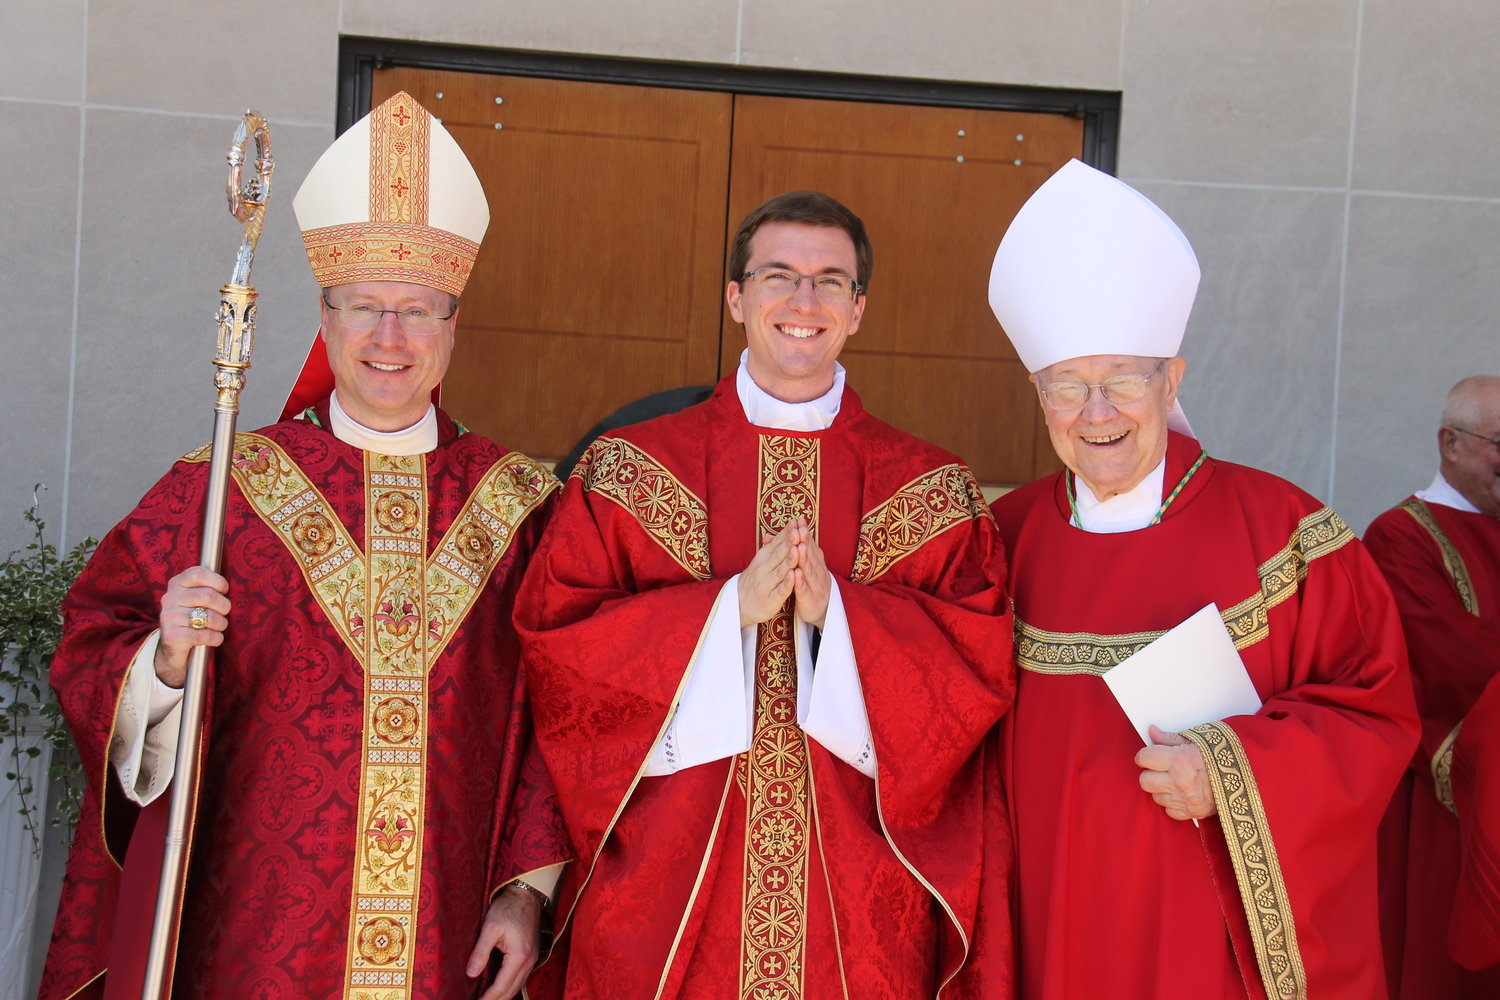 Bishop McKnight, Fr. Berhorst and Bishop Emeritus John R. Gaydos stand outside the cathedral after the Ordination Mass.